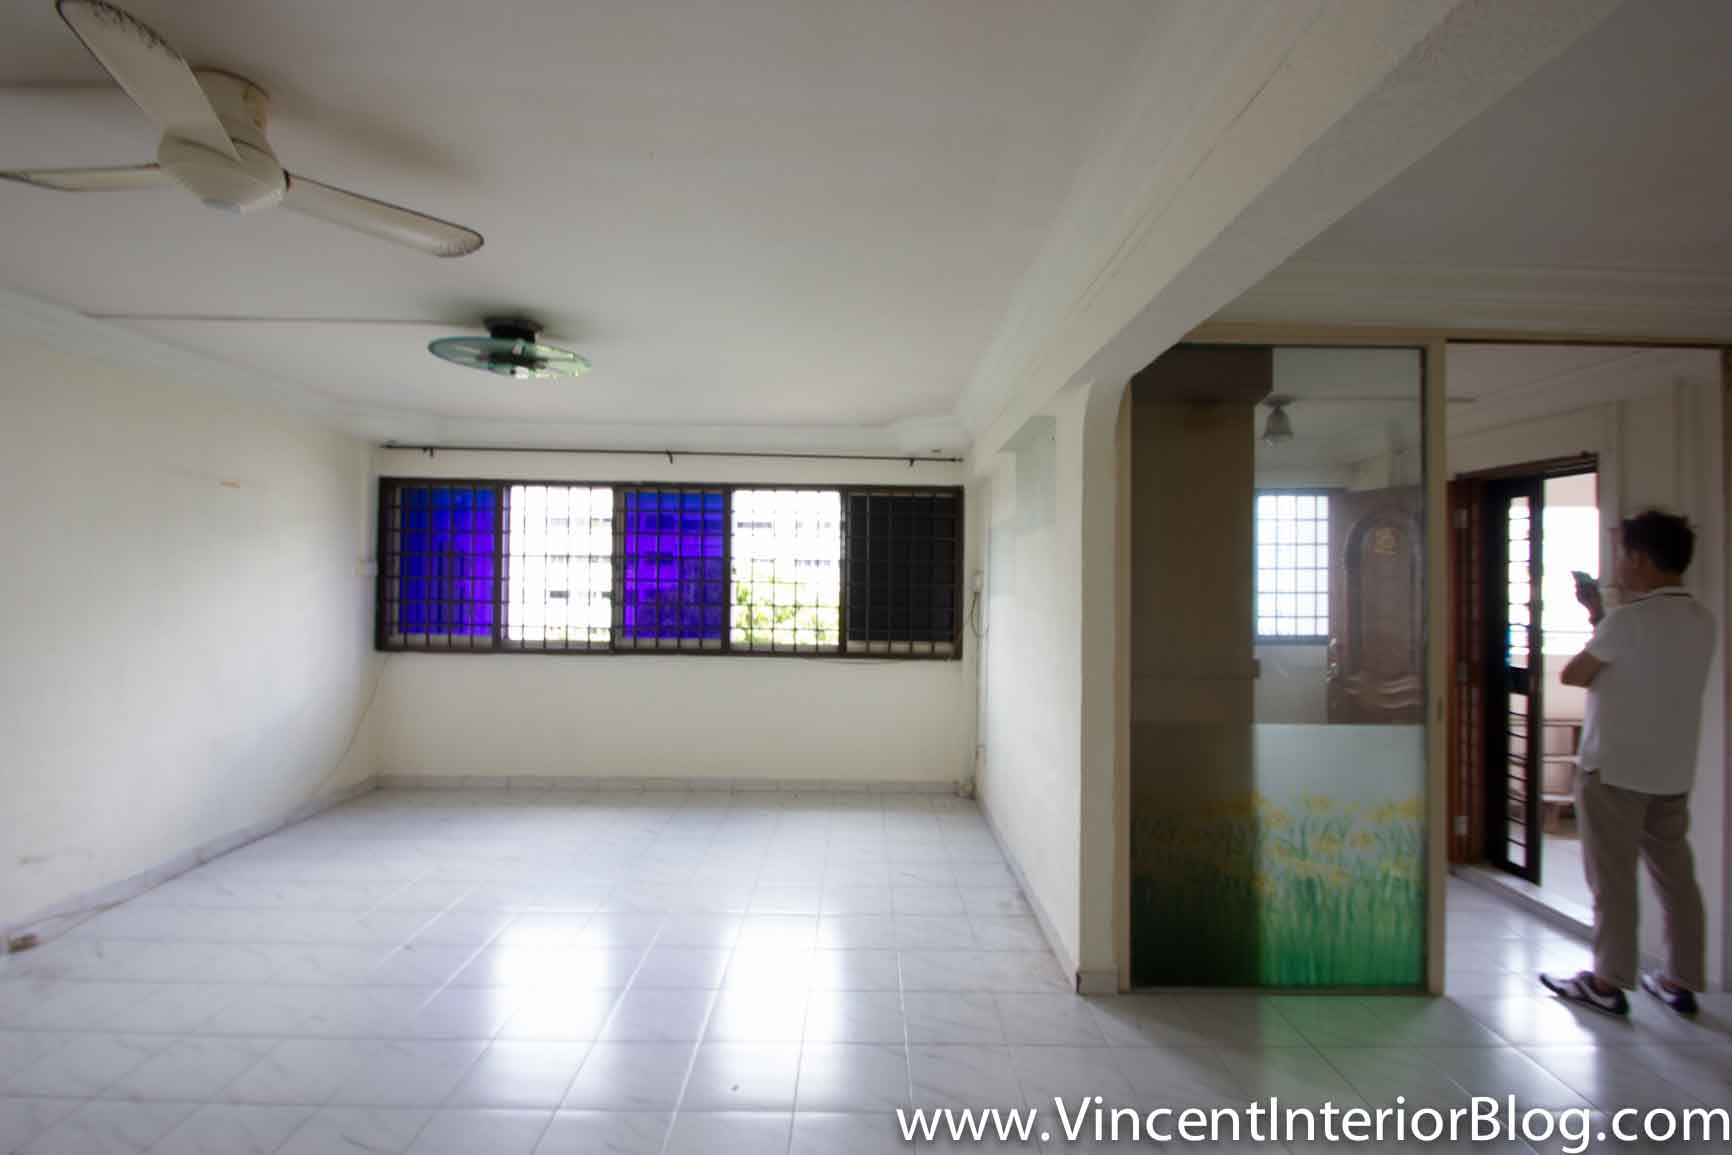 Bto 5 room interior design for Interior design singapore hdb 5 room flat